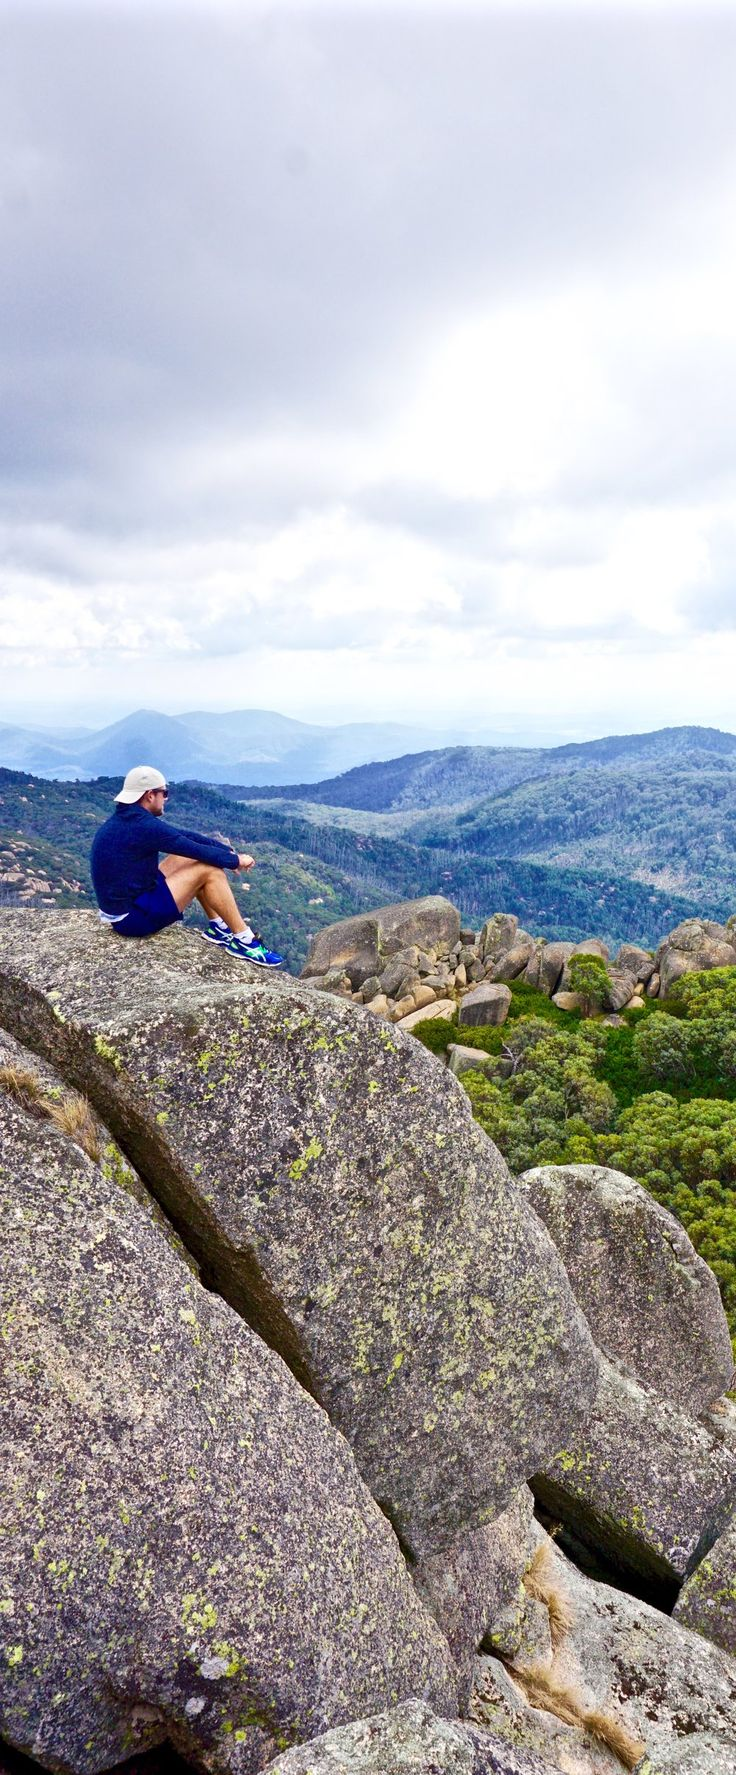 Bright and the Mount Buffalo National Park in Victoria, Australia— Licenced to Travel #victoria #bright #australia #mountbuffalo